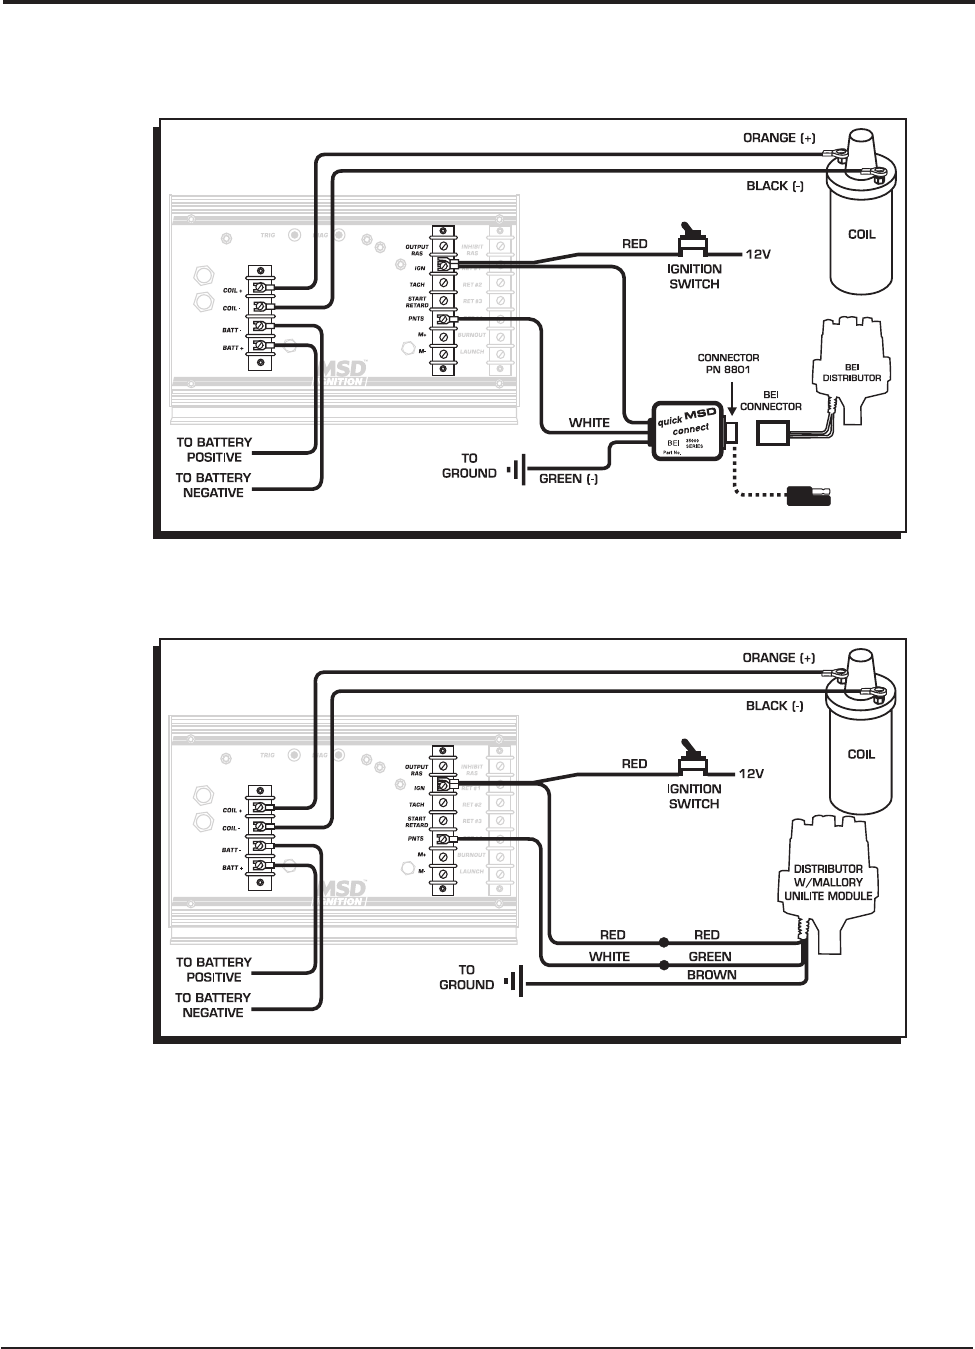 Msd 7230 Ignition Kit Installation Instructions 121 Wiring Diagrams For Msd6 Offroad With 8920 Tach Adapter 4